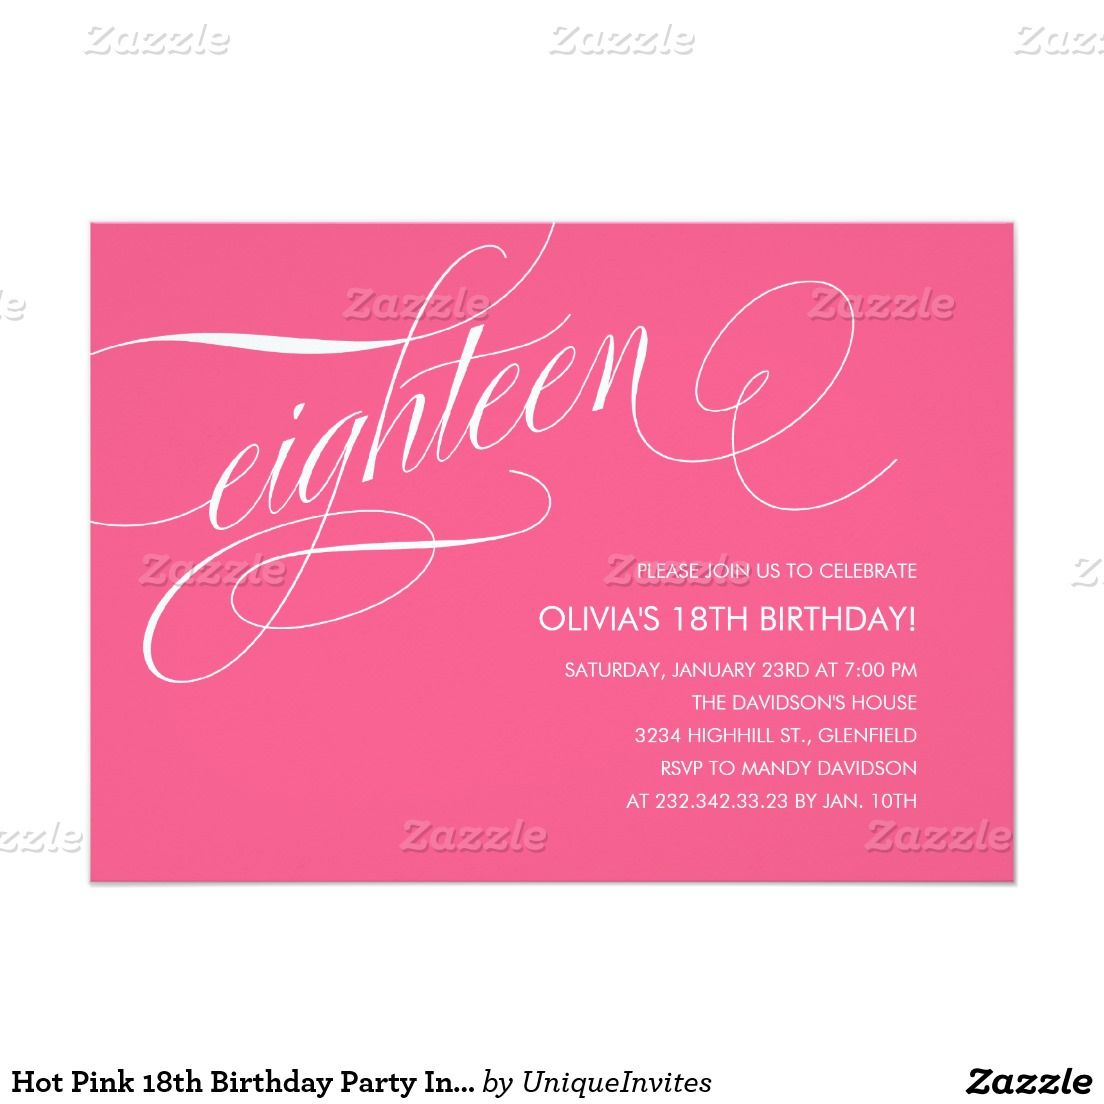 Hot Pink 18th Birthday Party Invitations | 18th birthday party ...